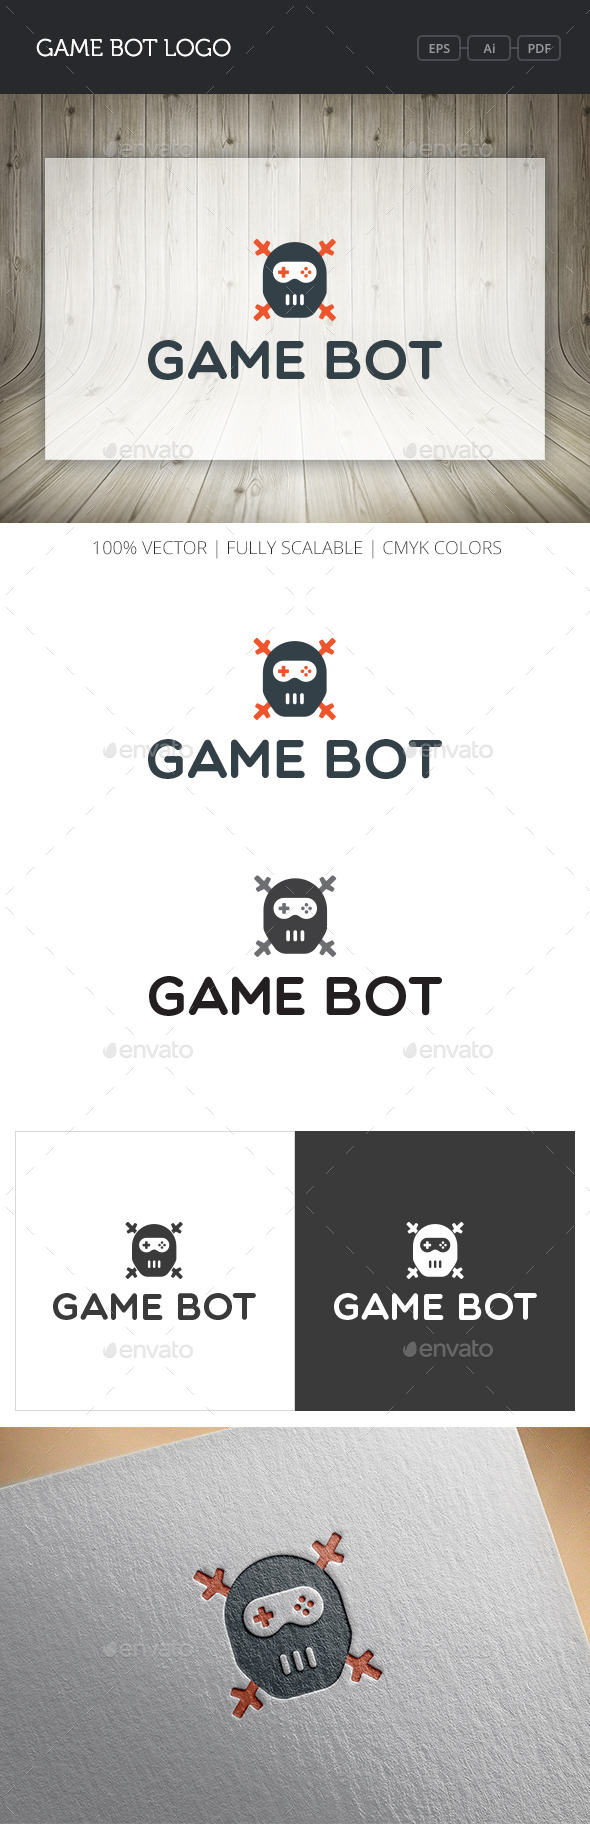 GraphicRiver Game Bot Logo 10869672